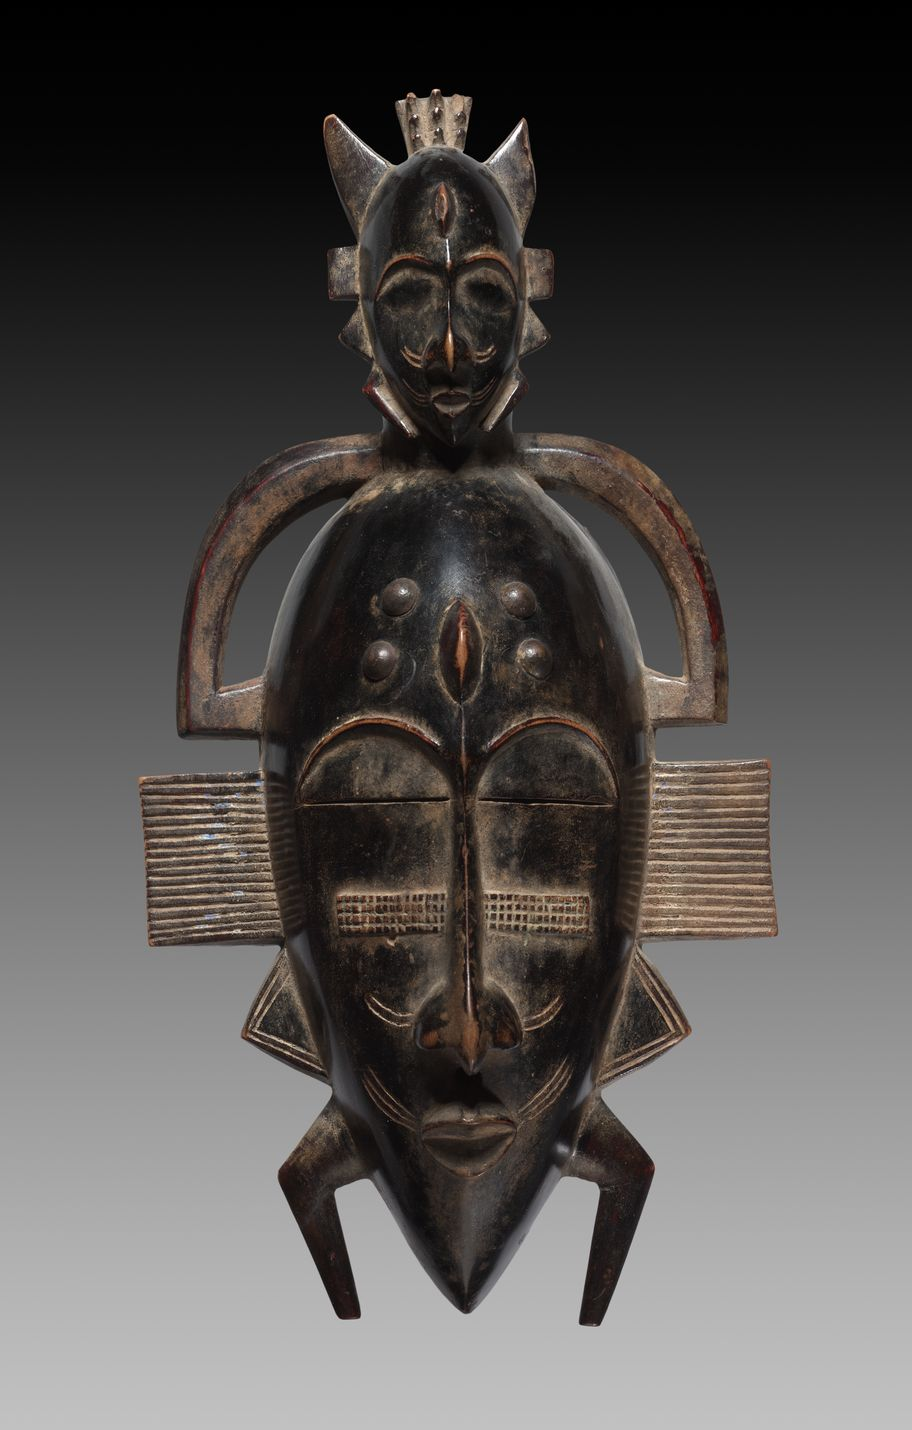 Ouazomon: Face Mask Attributed to Sabariko Koné (CMA 1989.48)